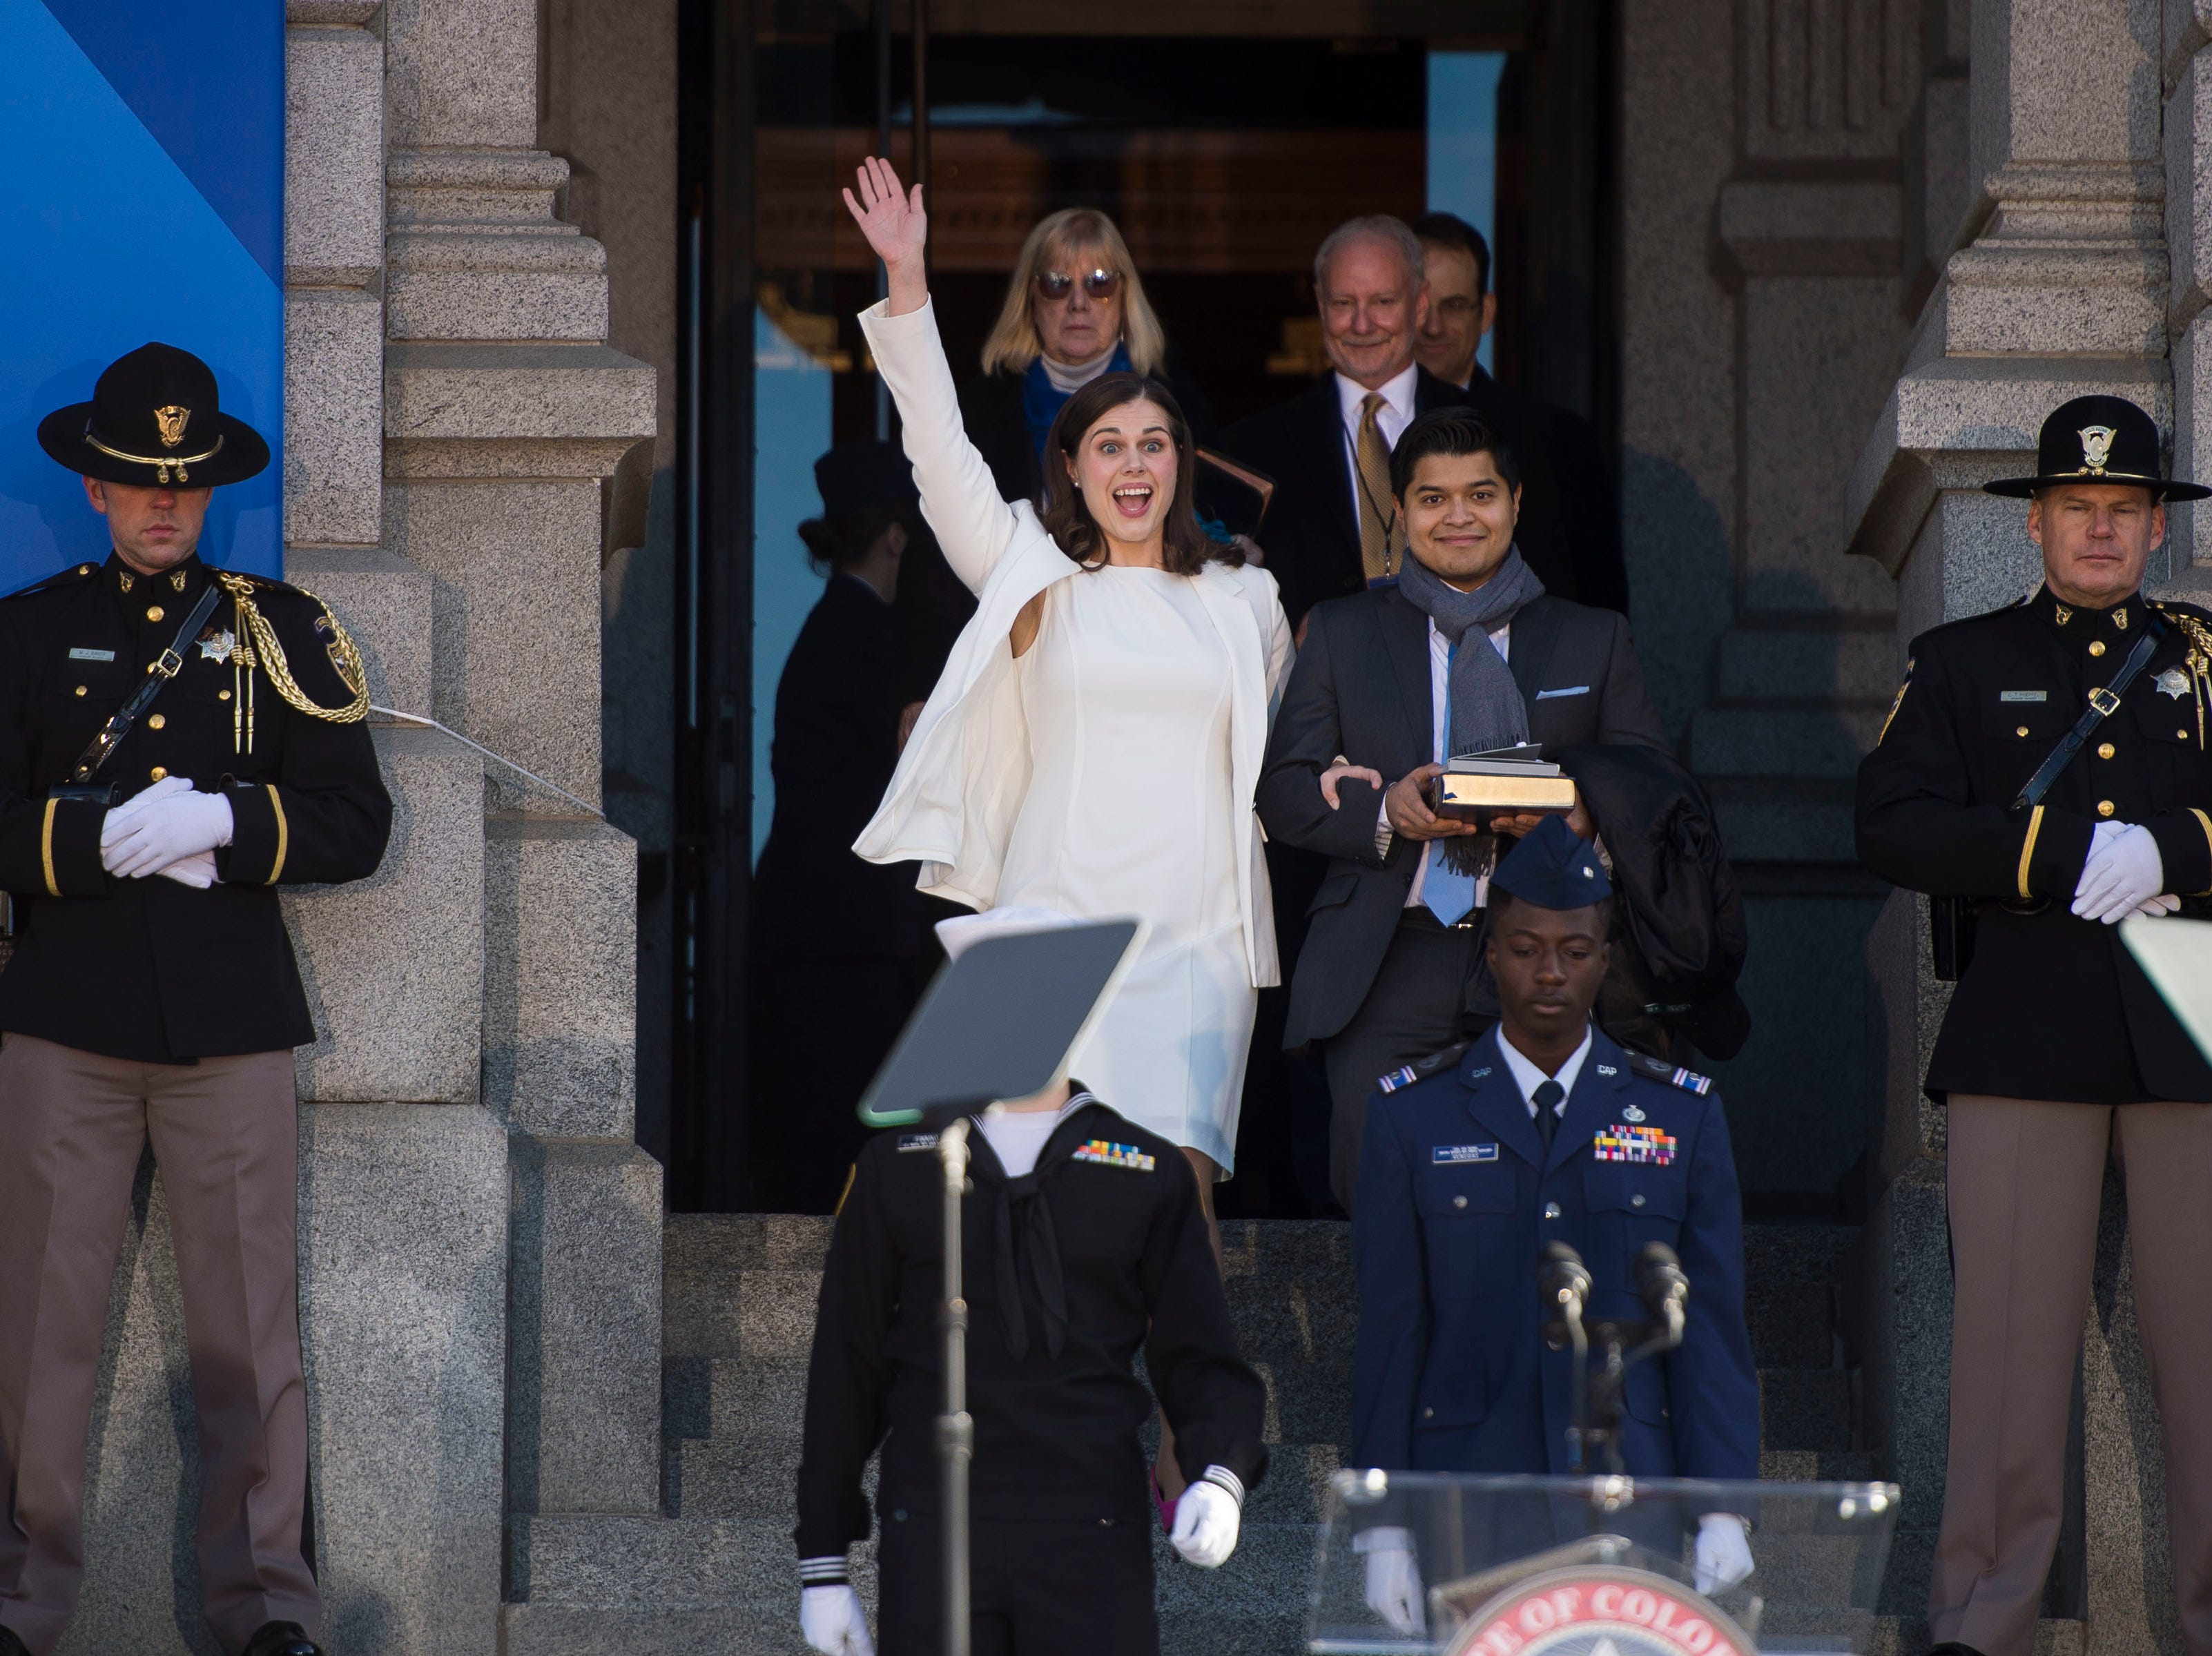 Colorado Secretary of State Jena Griswold waves to the crowd as she walks down the steps of the capital building before the inauguration of Colorado State Governor Jared Polis on Tuesday, Jan. 8, 2019, in front of the Colorado State Capital building in Denver, Colo.